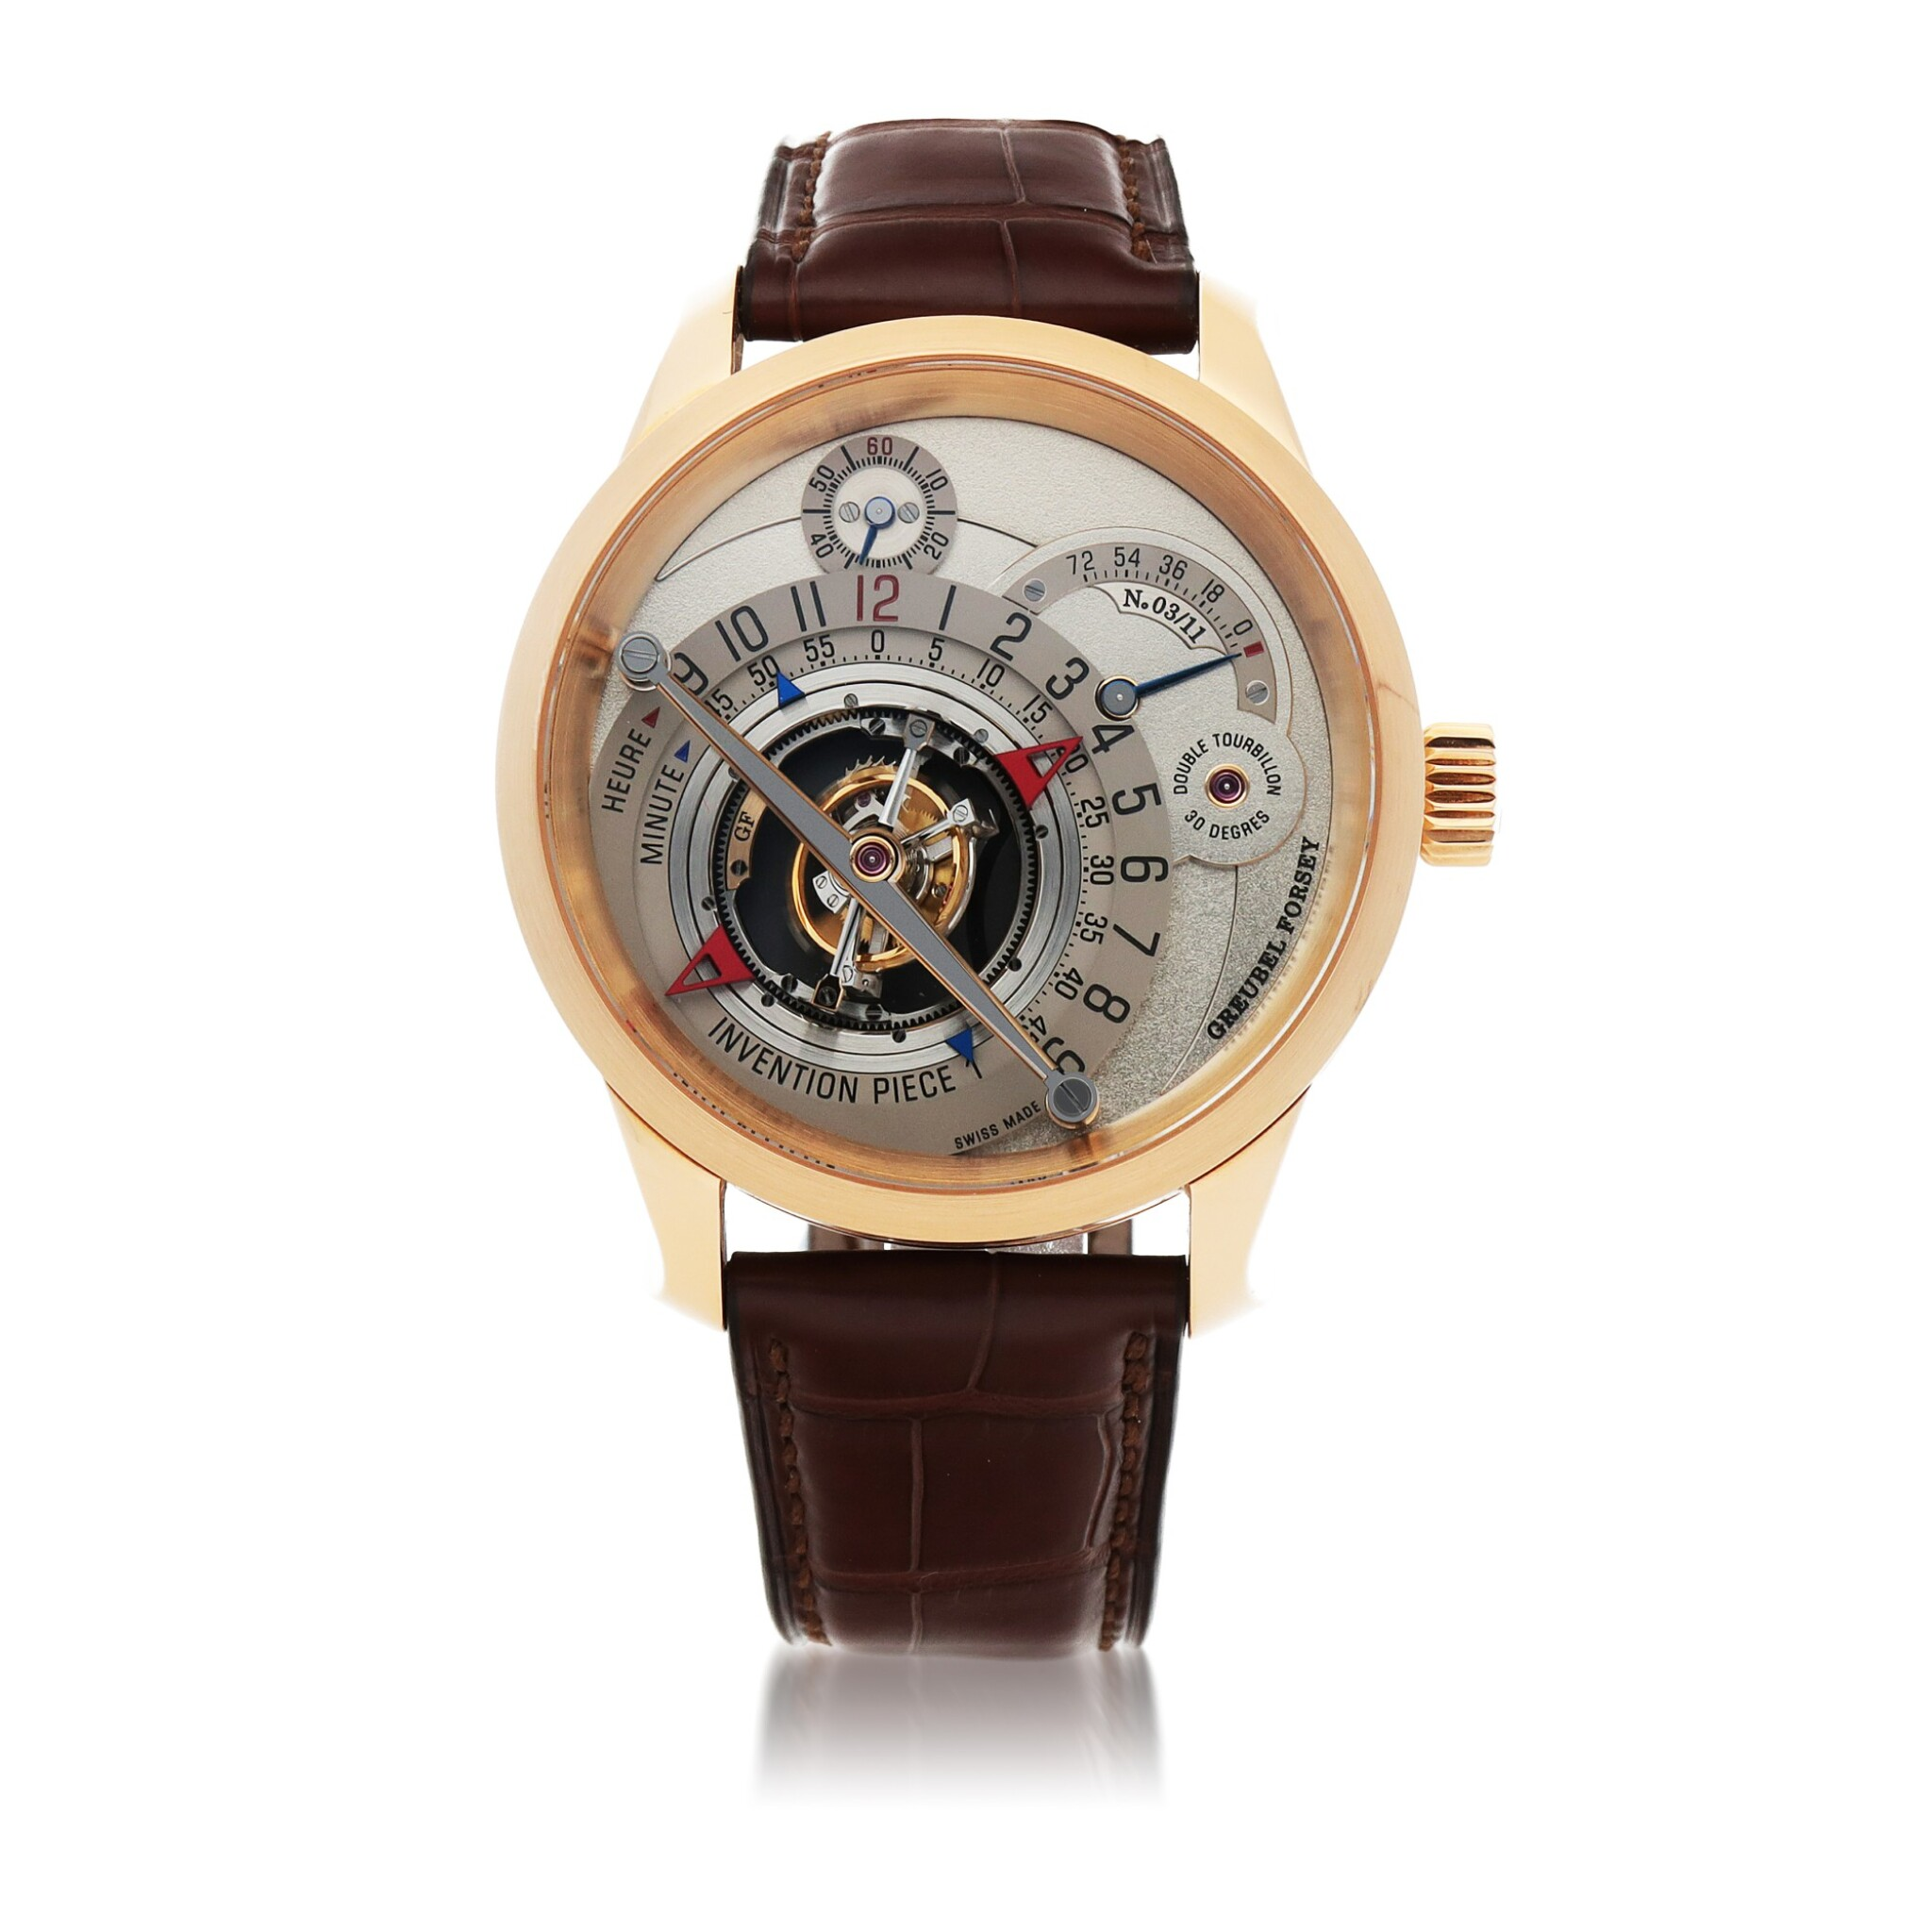 View full screen - View 1 of Lot 27. INVENTION PIECE 1 REF GF02N LIMITED EDITION PINK GOLD DOUBLE TOURBILLON WRISTWATCH WITH POWER RESERVE INDICATION CIRCA 2008 [ Greubel Forsey GF02N型號「INVENTION PIECE 1」限量版粉紅金雙體陀飛輪腕錶備動力儲存顯示,年份約2008].